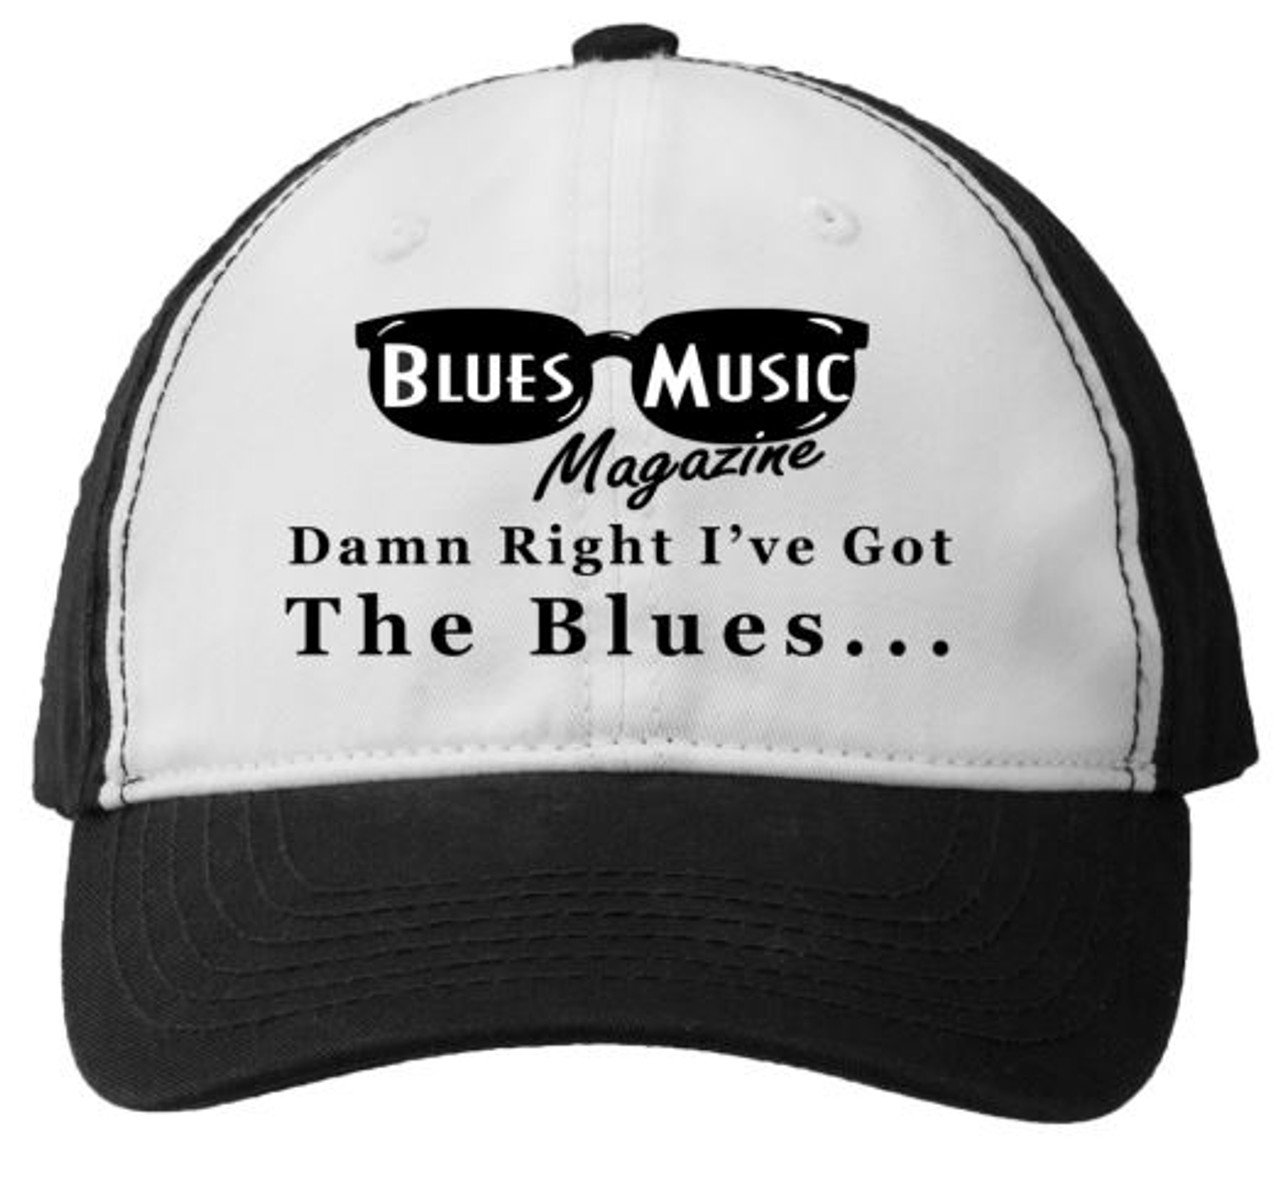 BLUES MUSIC MAGAZINE DAMN RIGHT BLACK & WHITE EMBROIDERED HAT